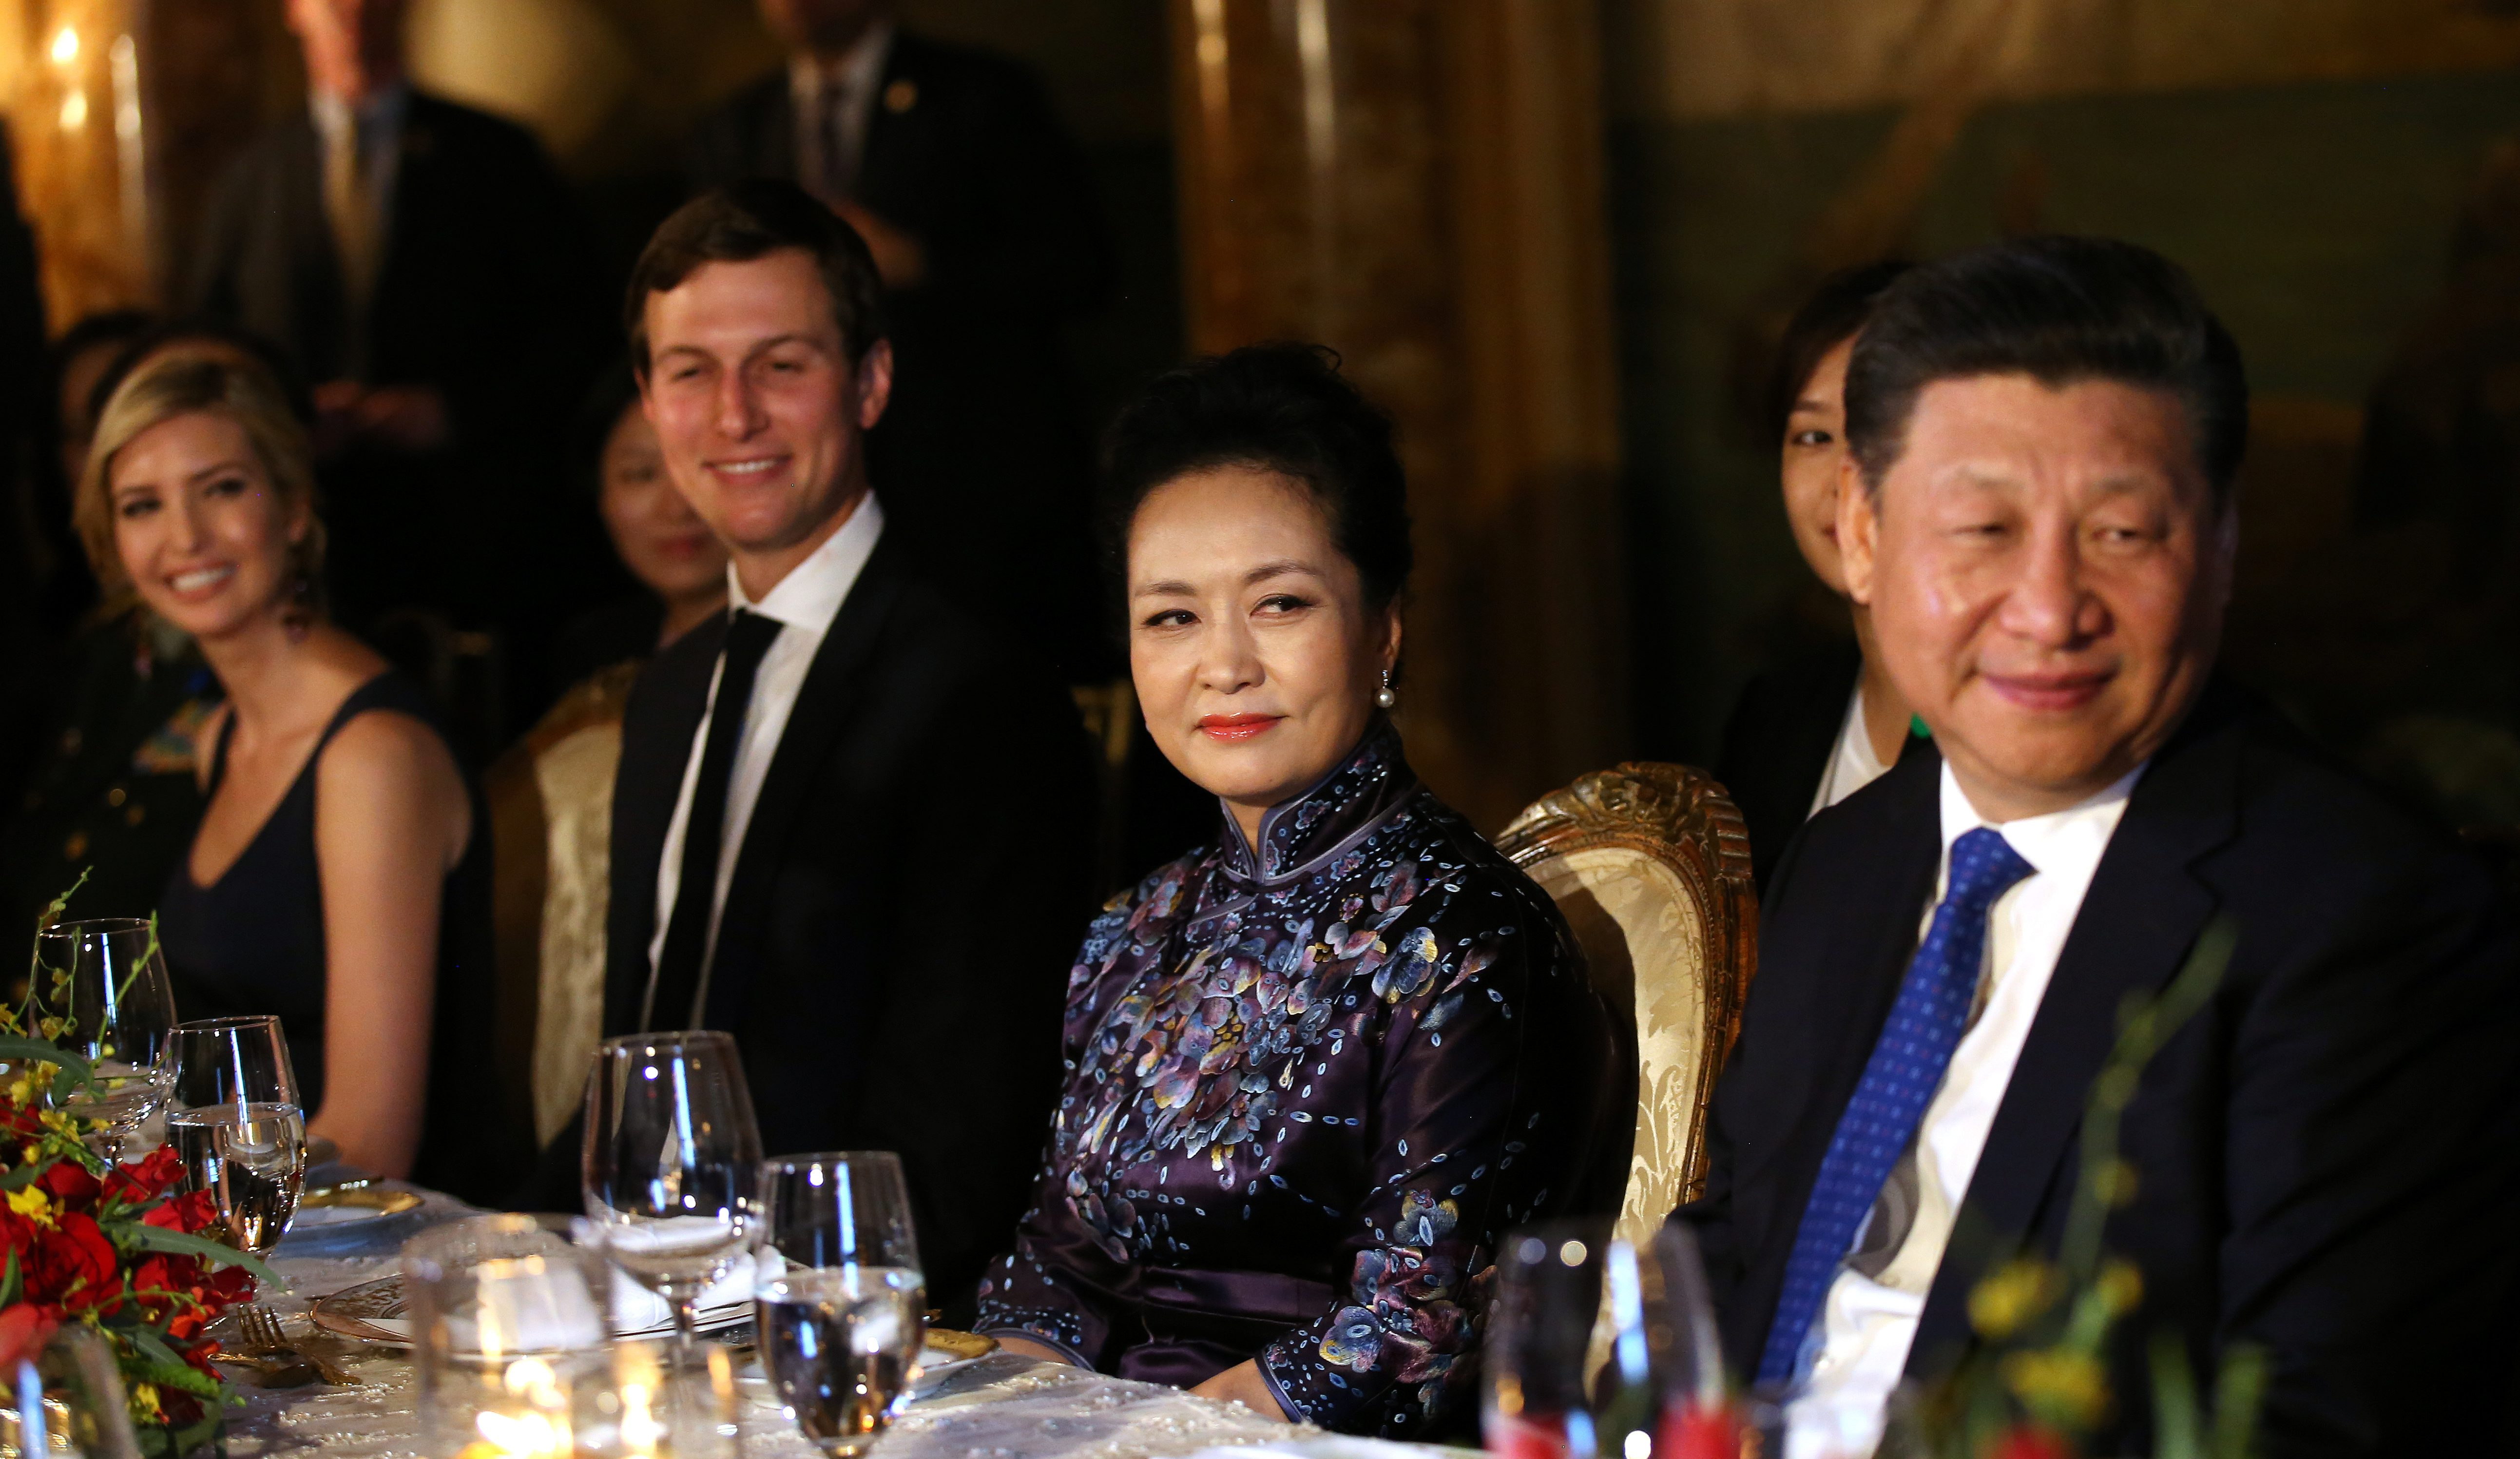 China's first lady Peng Liyuan looks at Chinese President Xi Jinping (R) as she sits next to Trump Senior Advisor Jared Kushner and Ivanka Trump (L), during a dinner at the start of a summit between U.S. President Donald Trump and Chinese President Xi at Trump's Mar-a-Lago estate in West Palm Beach, Florida, U.S. April 6, 2017. REUTERS/Carlos Barria - RTX34GUG